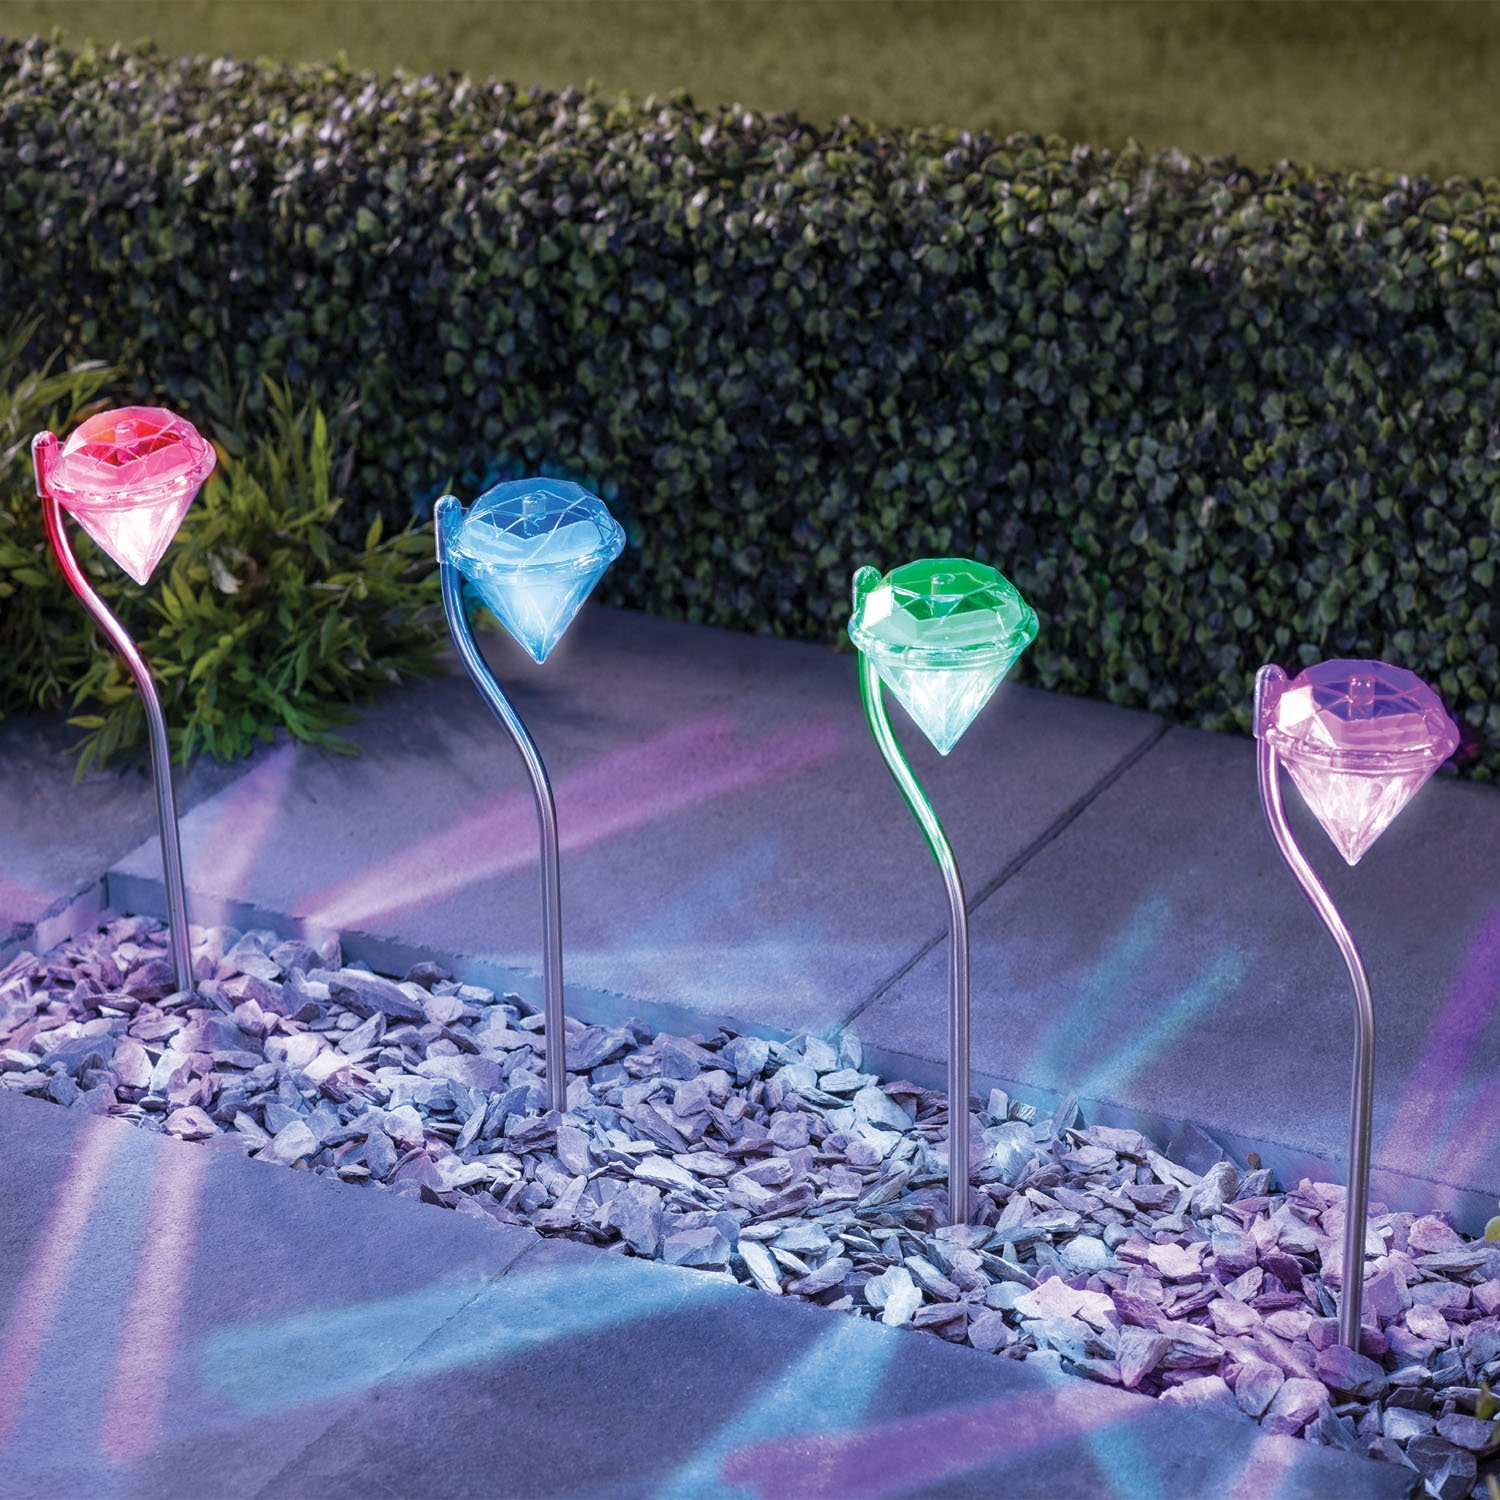 3 x STAINLESS STEEL SOLAR FIBRE OPTIC COLOUR CHANGING LED GARDEN